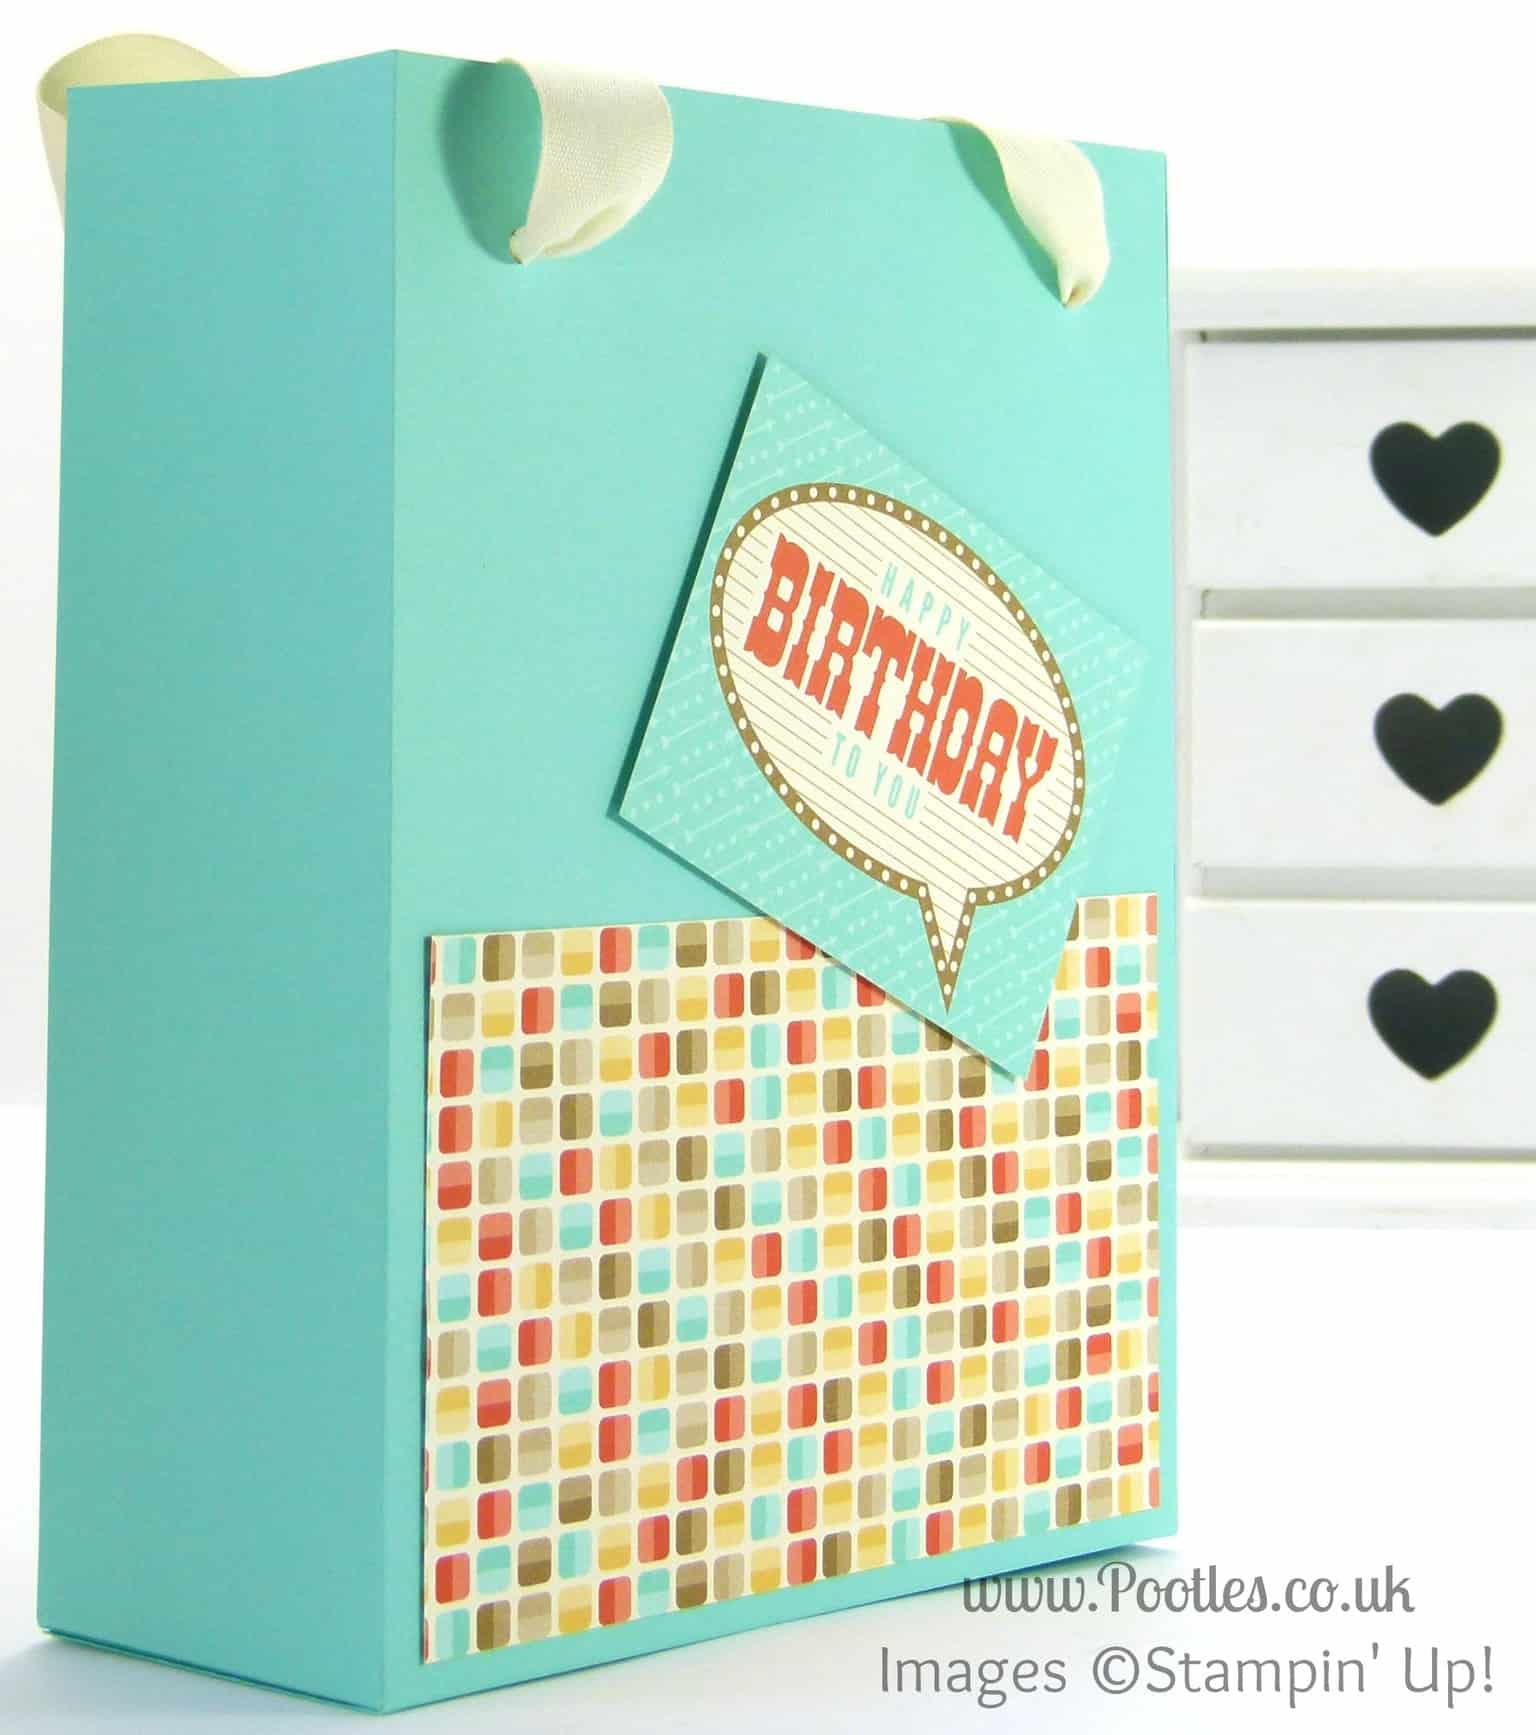 Stampin' Up! UK Demonstrator Pootles - Extra Massive Bag Box Tutorial Retro Fresh